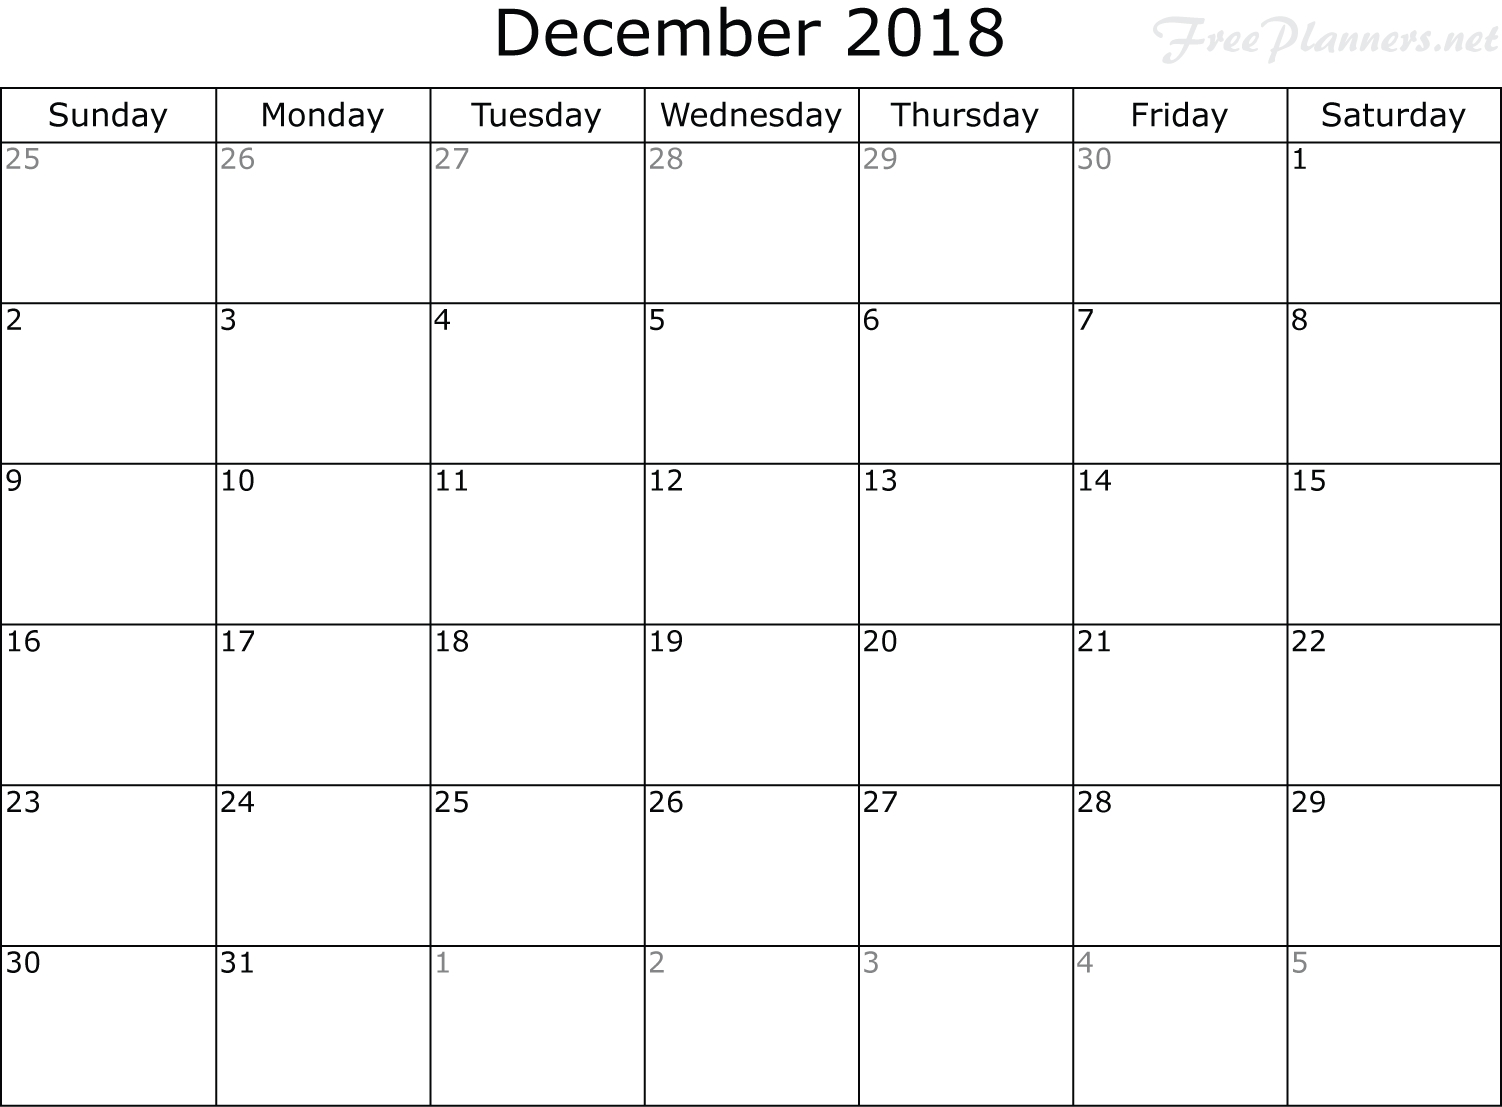 December 2018 Planner-National Food Day Monthly Calendar